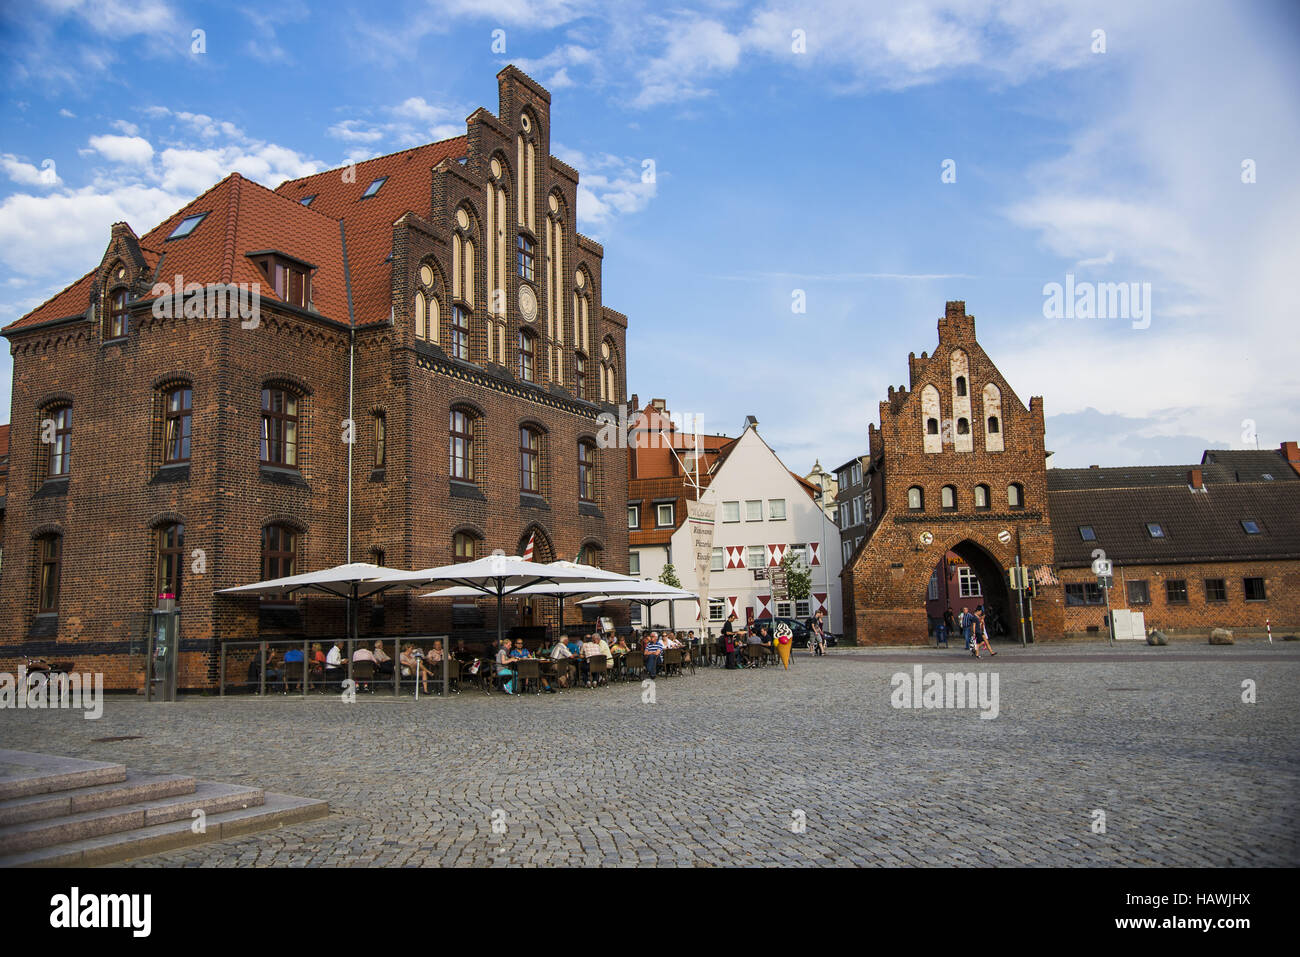 Port gate, Wismar - Stock Image